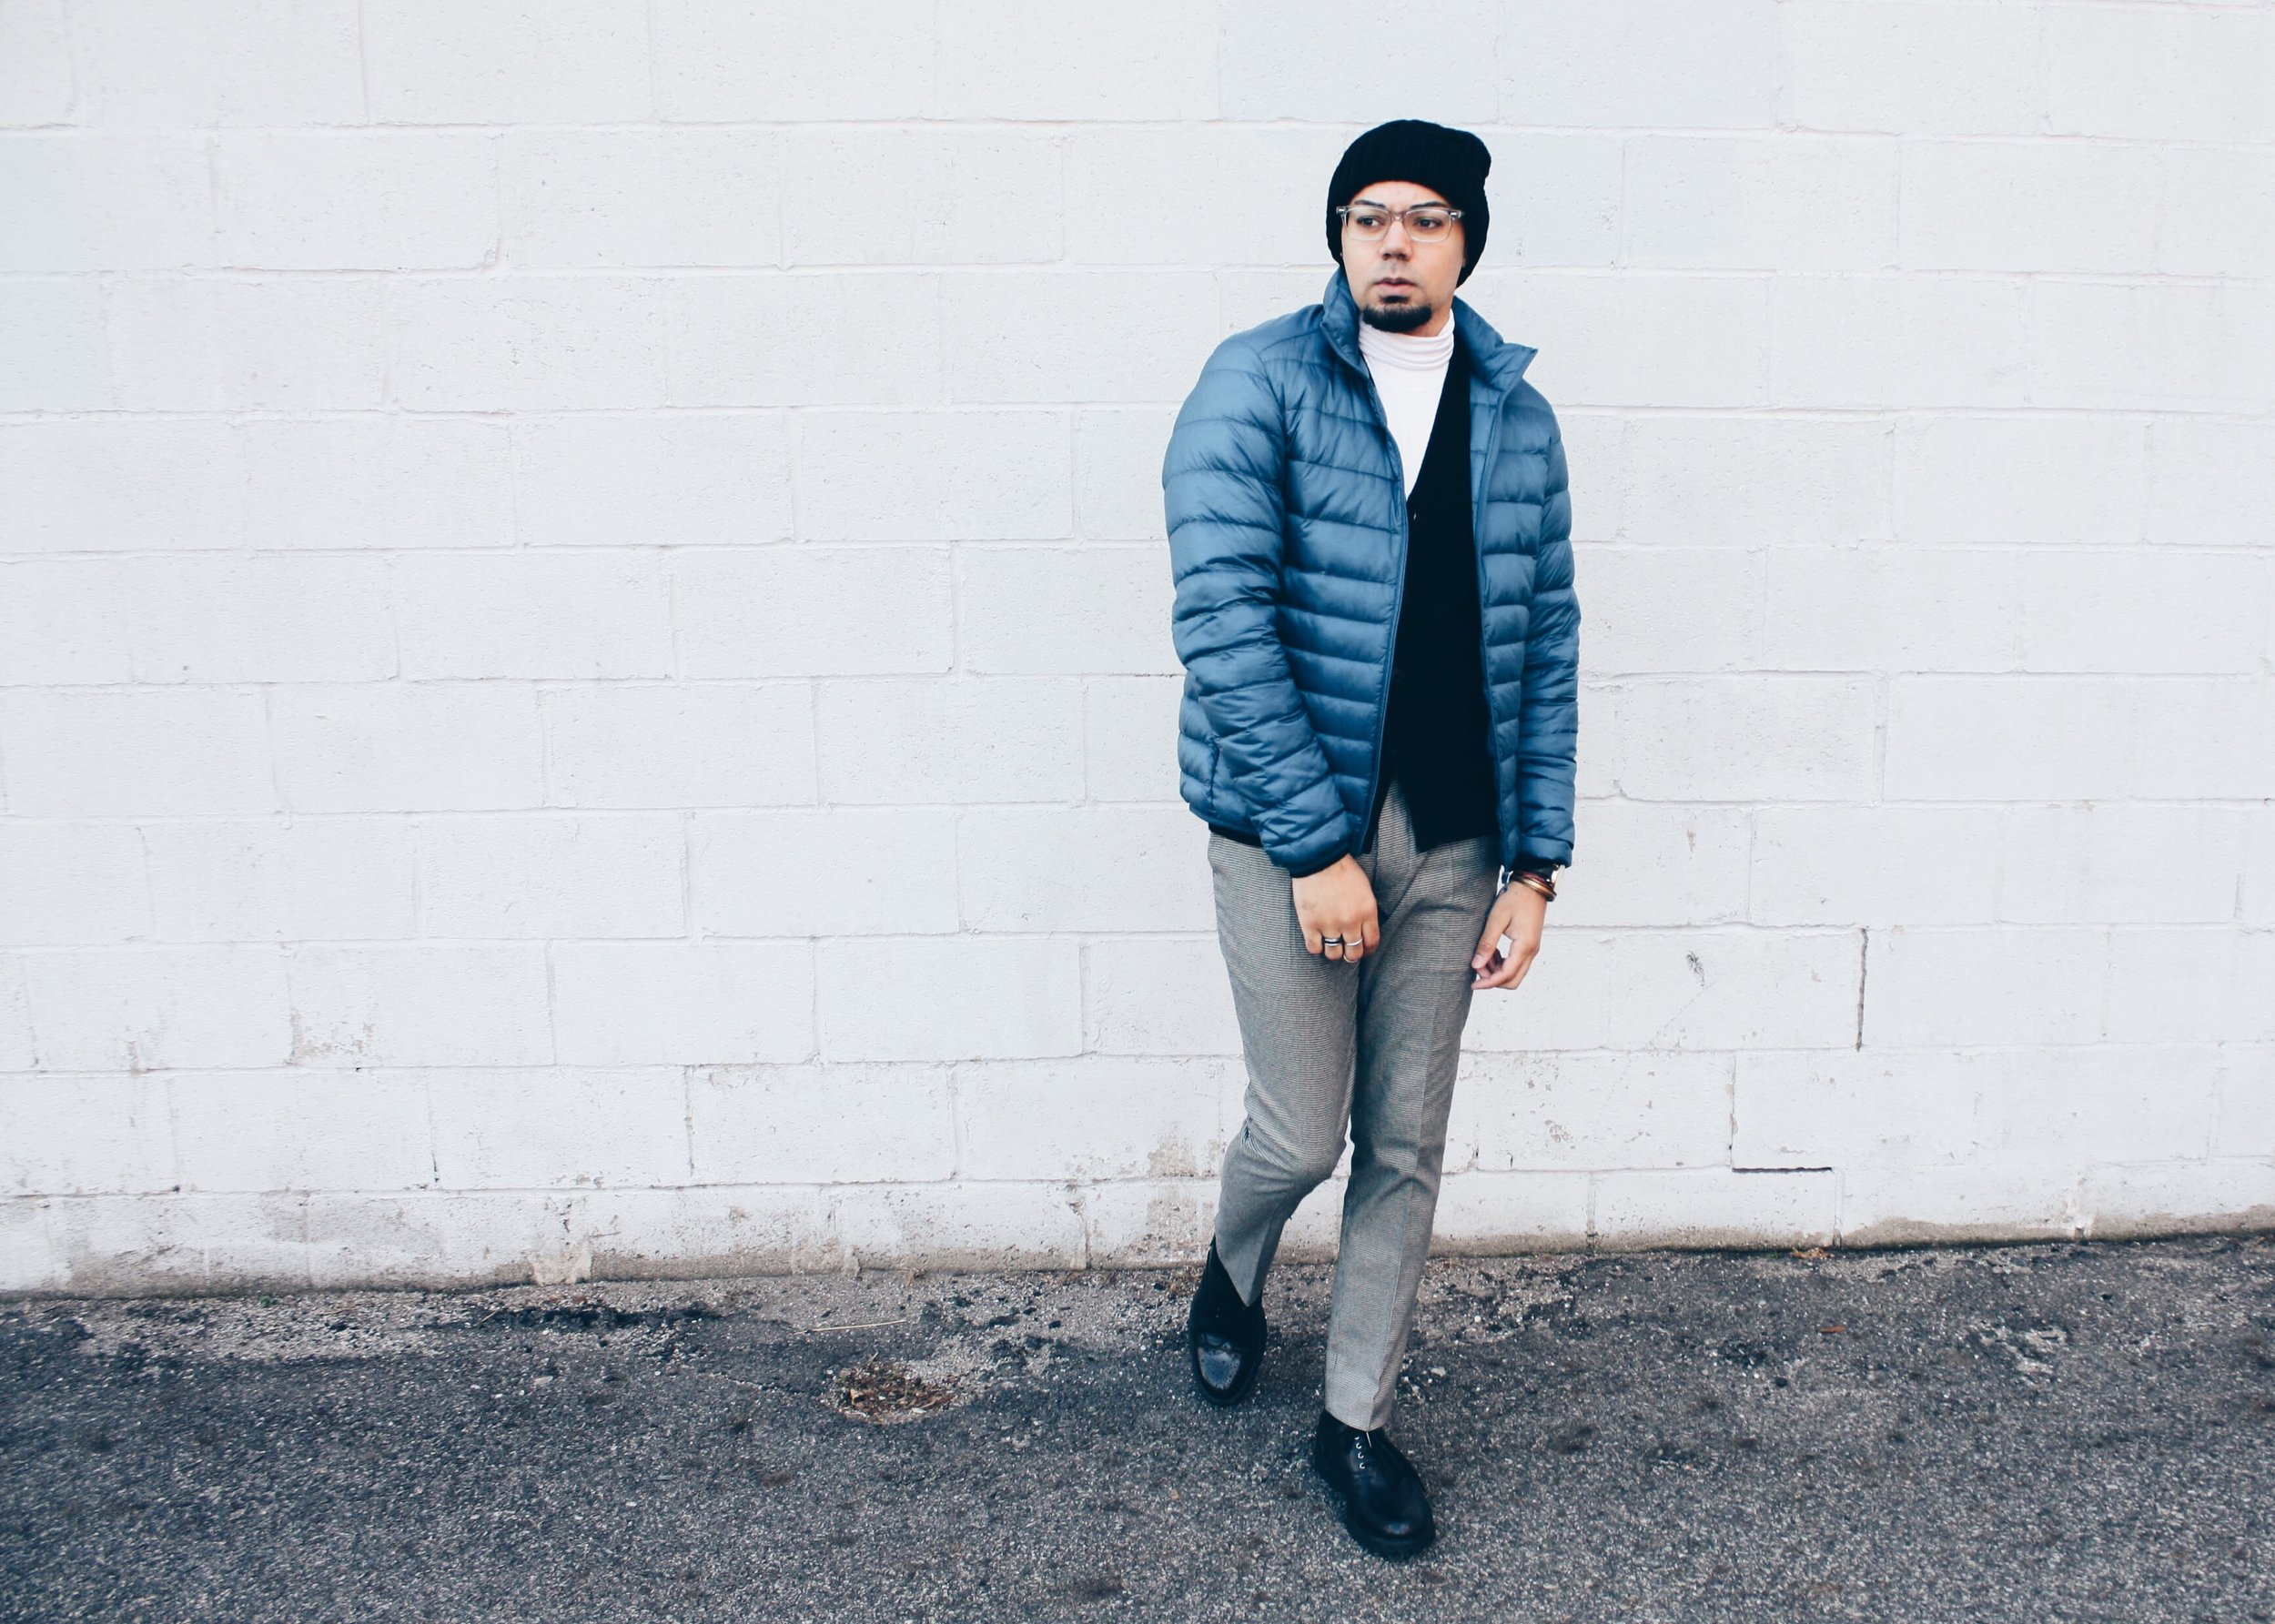 sam-c-perry-uniqlo-heattech-smart-holiday-looks-with-uniqlo-side-movement.jpg